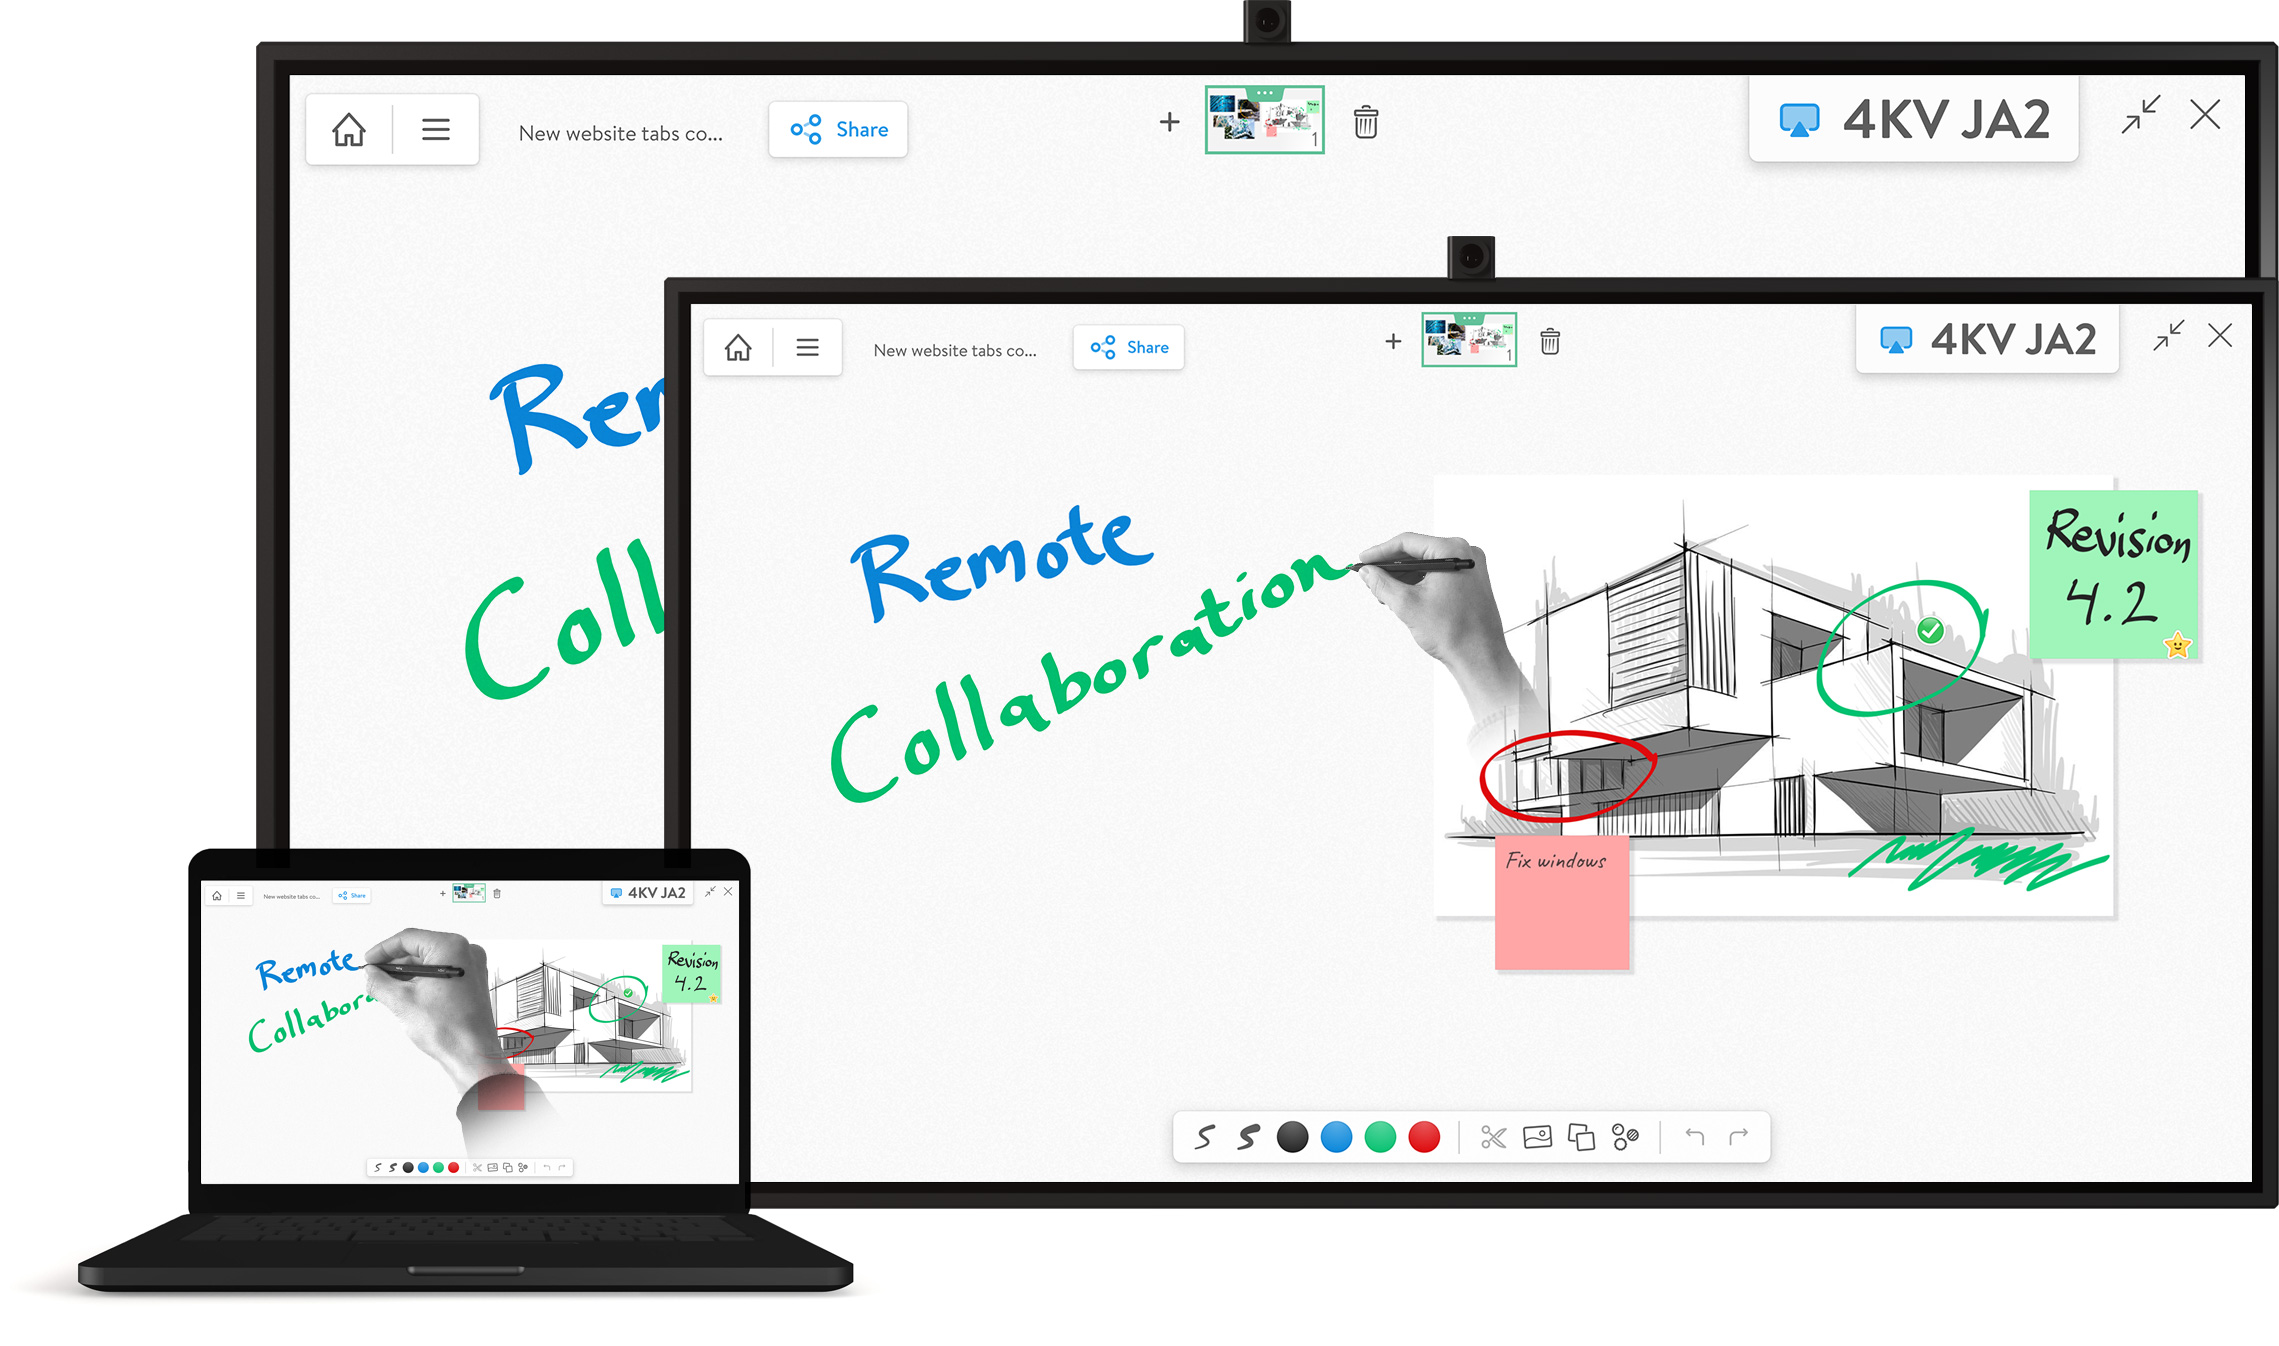 Remotely Collaborate with your team using whiteboard